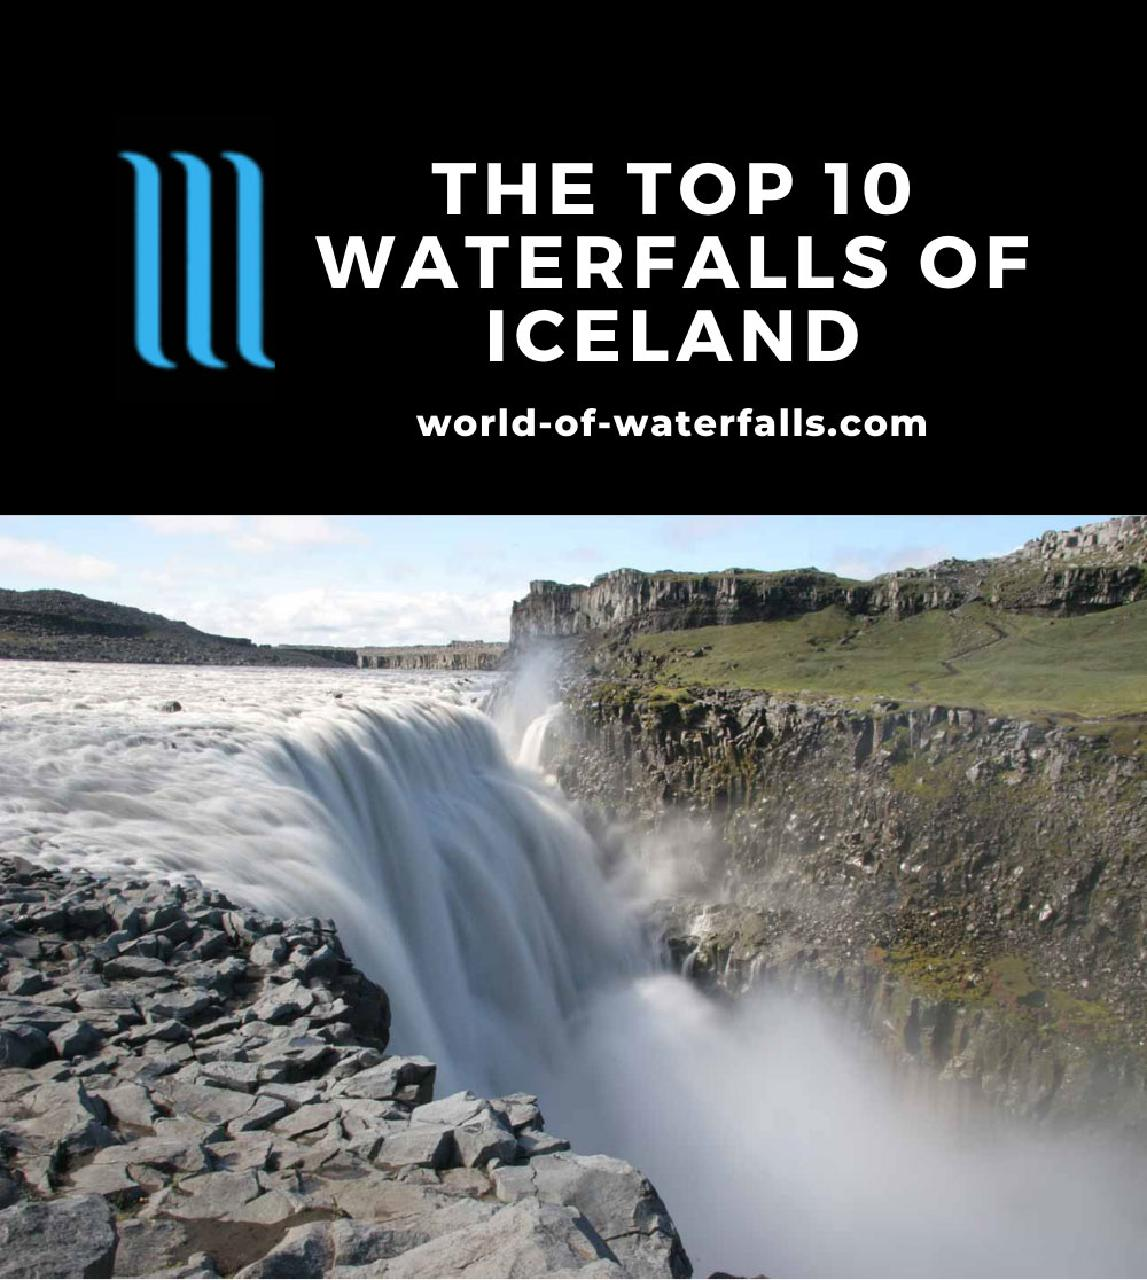 The Top 10 Waterfalls of Iceland